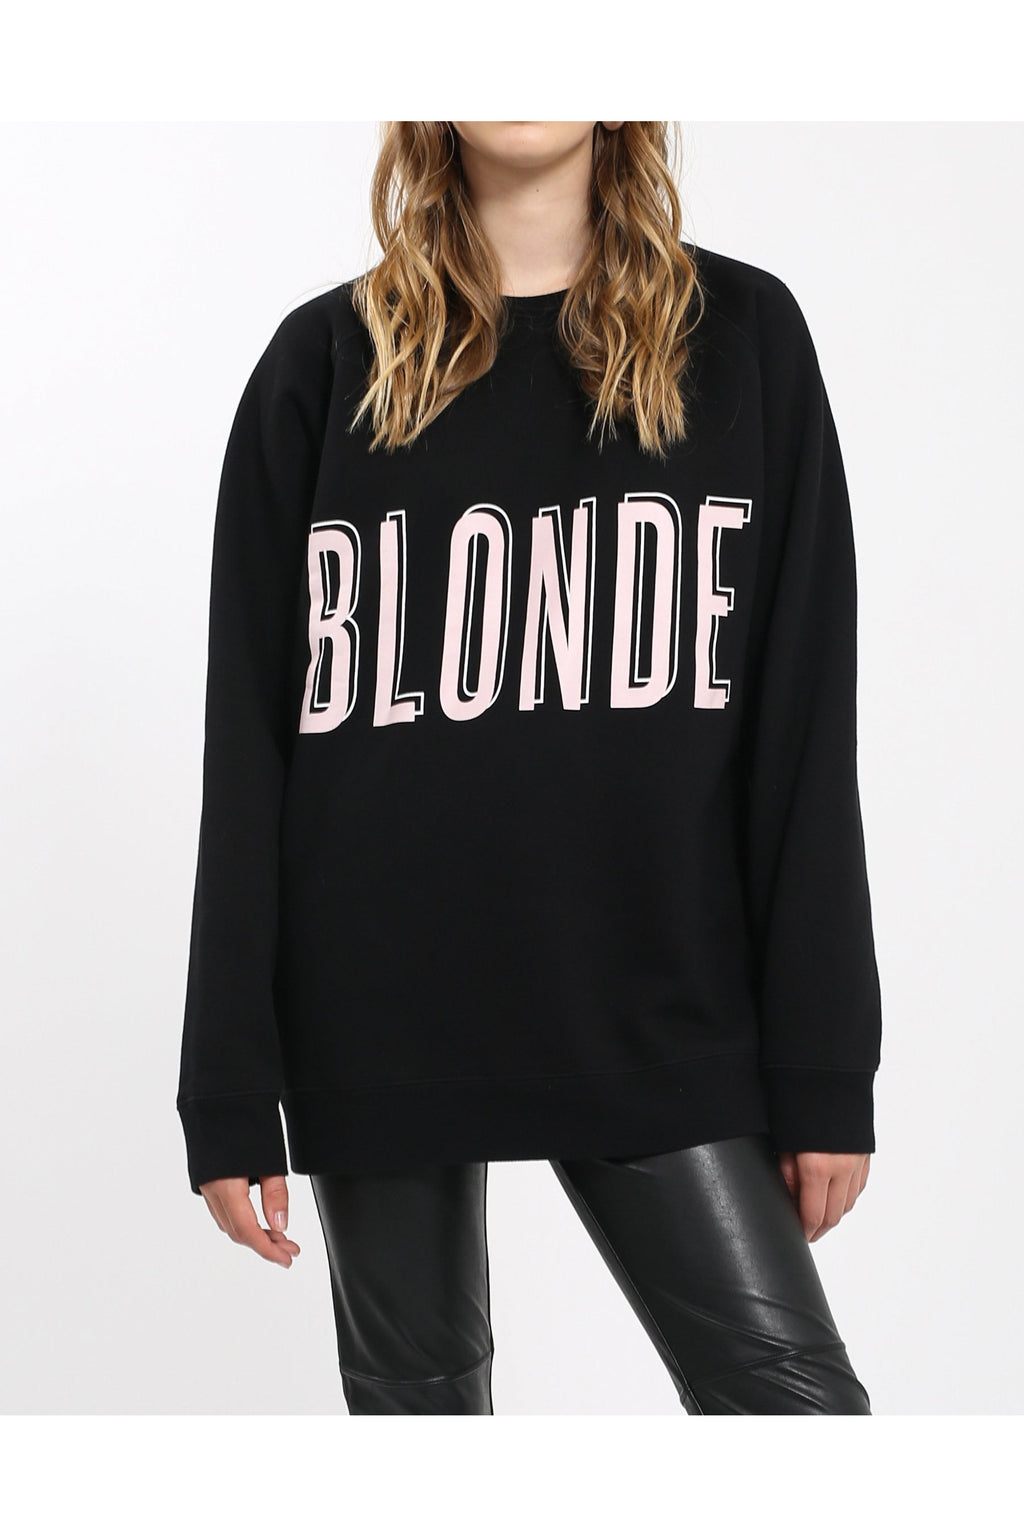 Blonde Big Sister Oversized Sweater